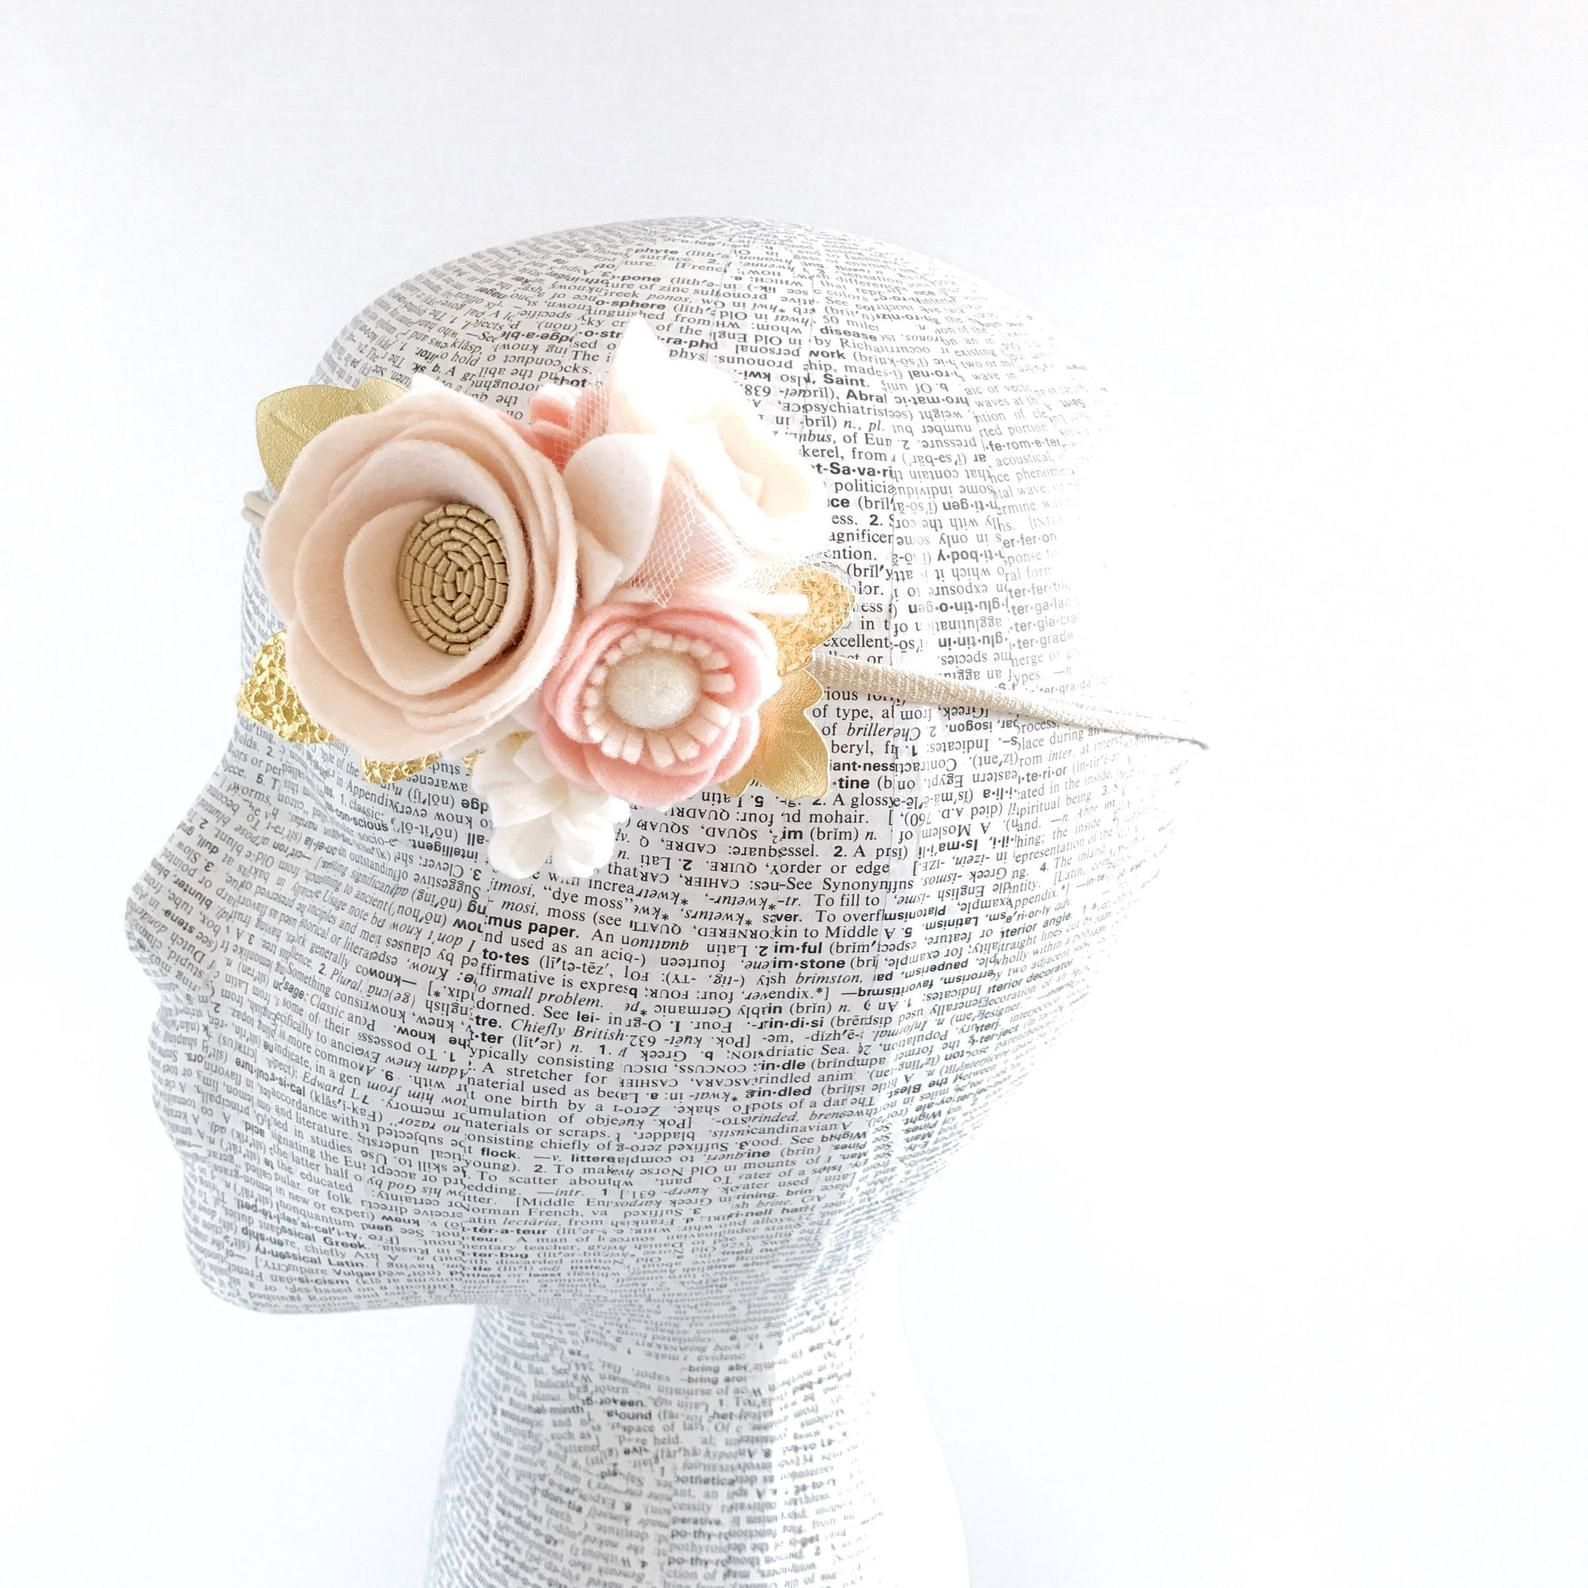 Felt Flower Headband. Light Blush Felt Flower Crown. Baby Girl | Etsy #feltflowerheadbands Felt Flower Headband. Light Blush Felt Flower Crown. Baby Girl | Etsy #feltflowerheadbands Felt Flower Headband. Light Blush Felt Flower Crown. Baby Girl | Etsy #feltflowerheadbands Felt Flower Headband. Light Blush Felt Flower Crown. Baby Girl | Etsy #feltflowerheadbands